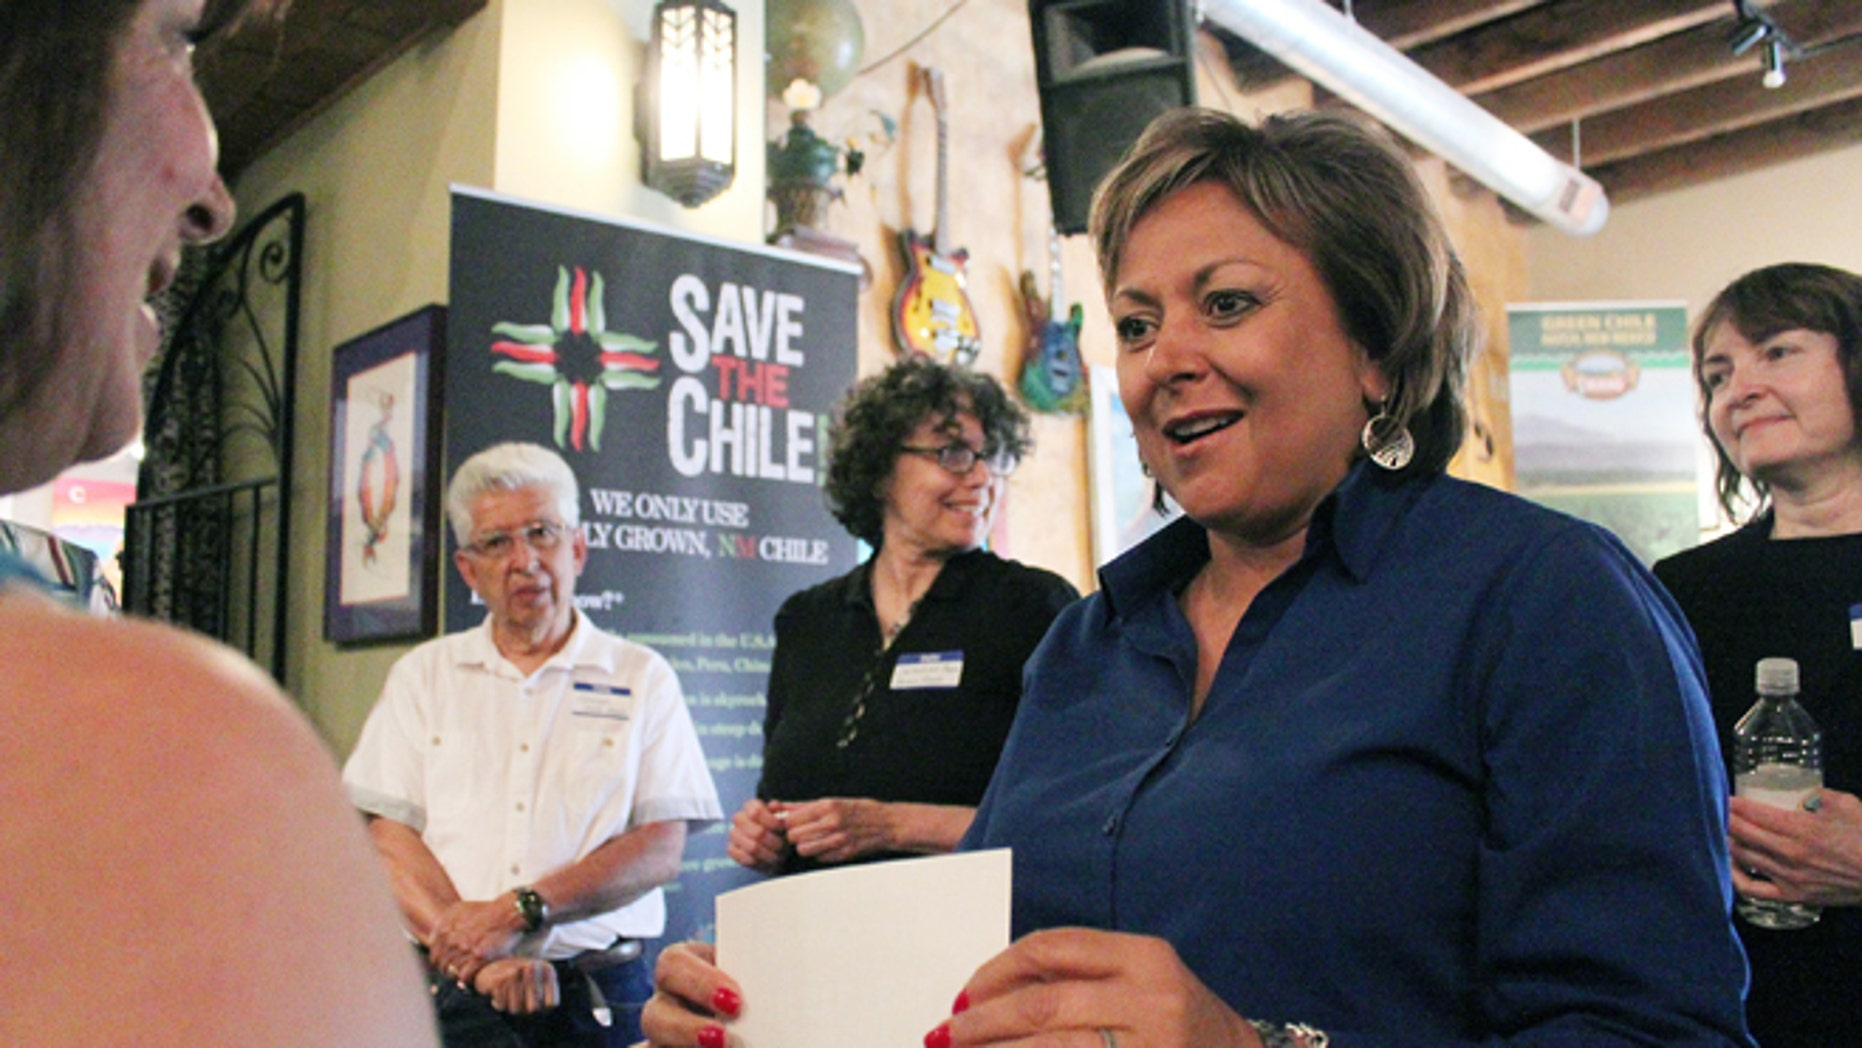 New Mexico Gov. Susana Martinez, right, talks about her love of New Mexico-grown green chile before unveiling a new certification program for the state's signature crop during at stop at The Range restaurant in Bernalillo, N.M., on Tuesday, Aug. 19, 2014. The restaurant is the first to sign up to participate in the program. (AP Photo/Susan Montoya Bryan)